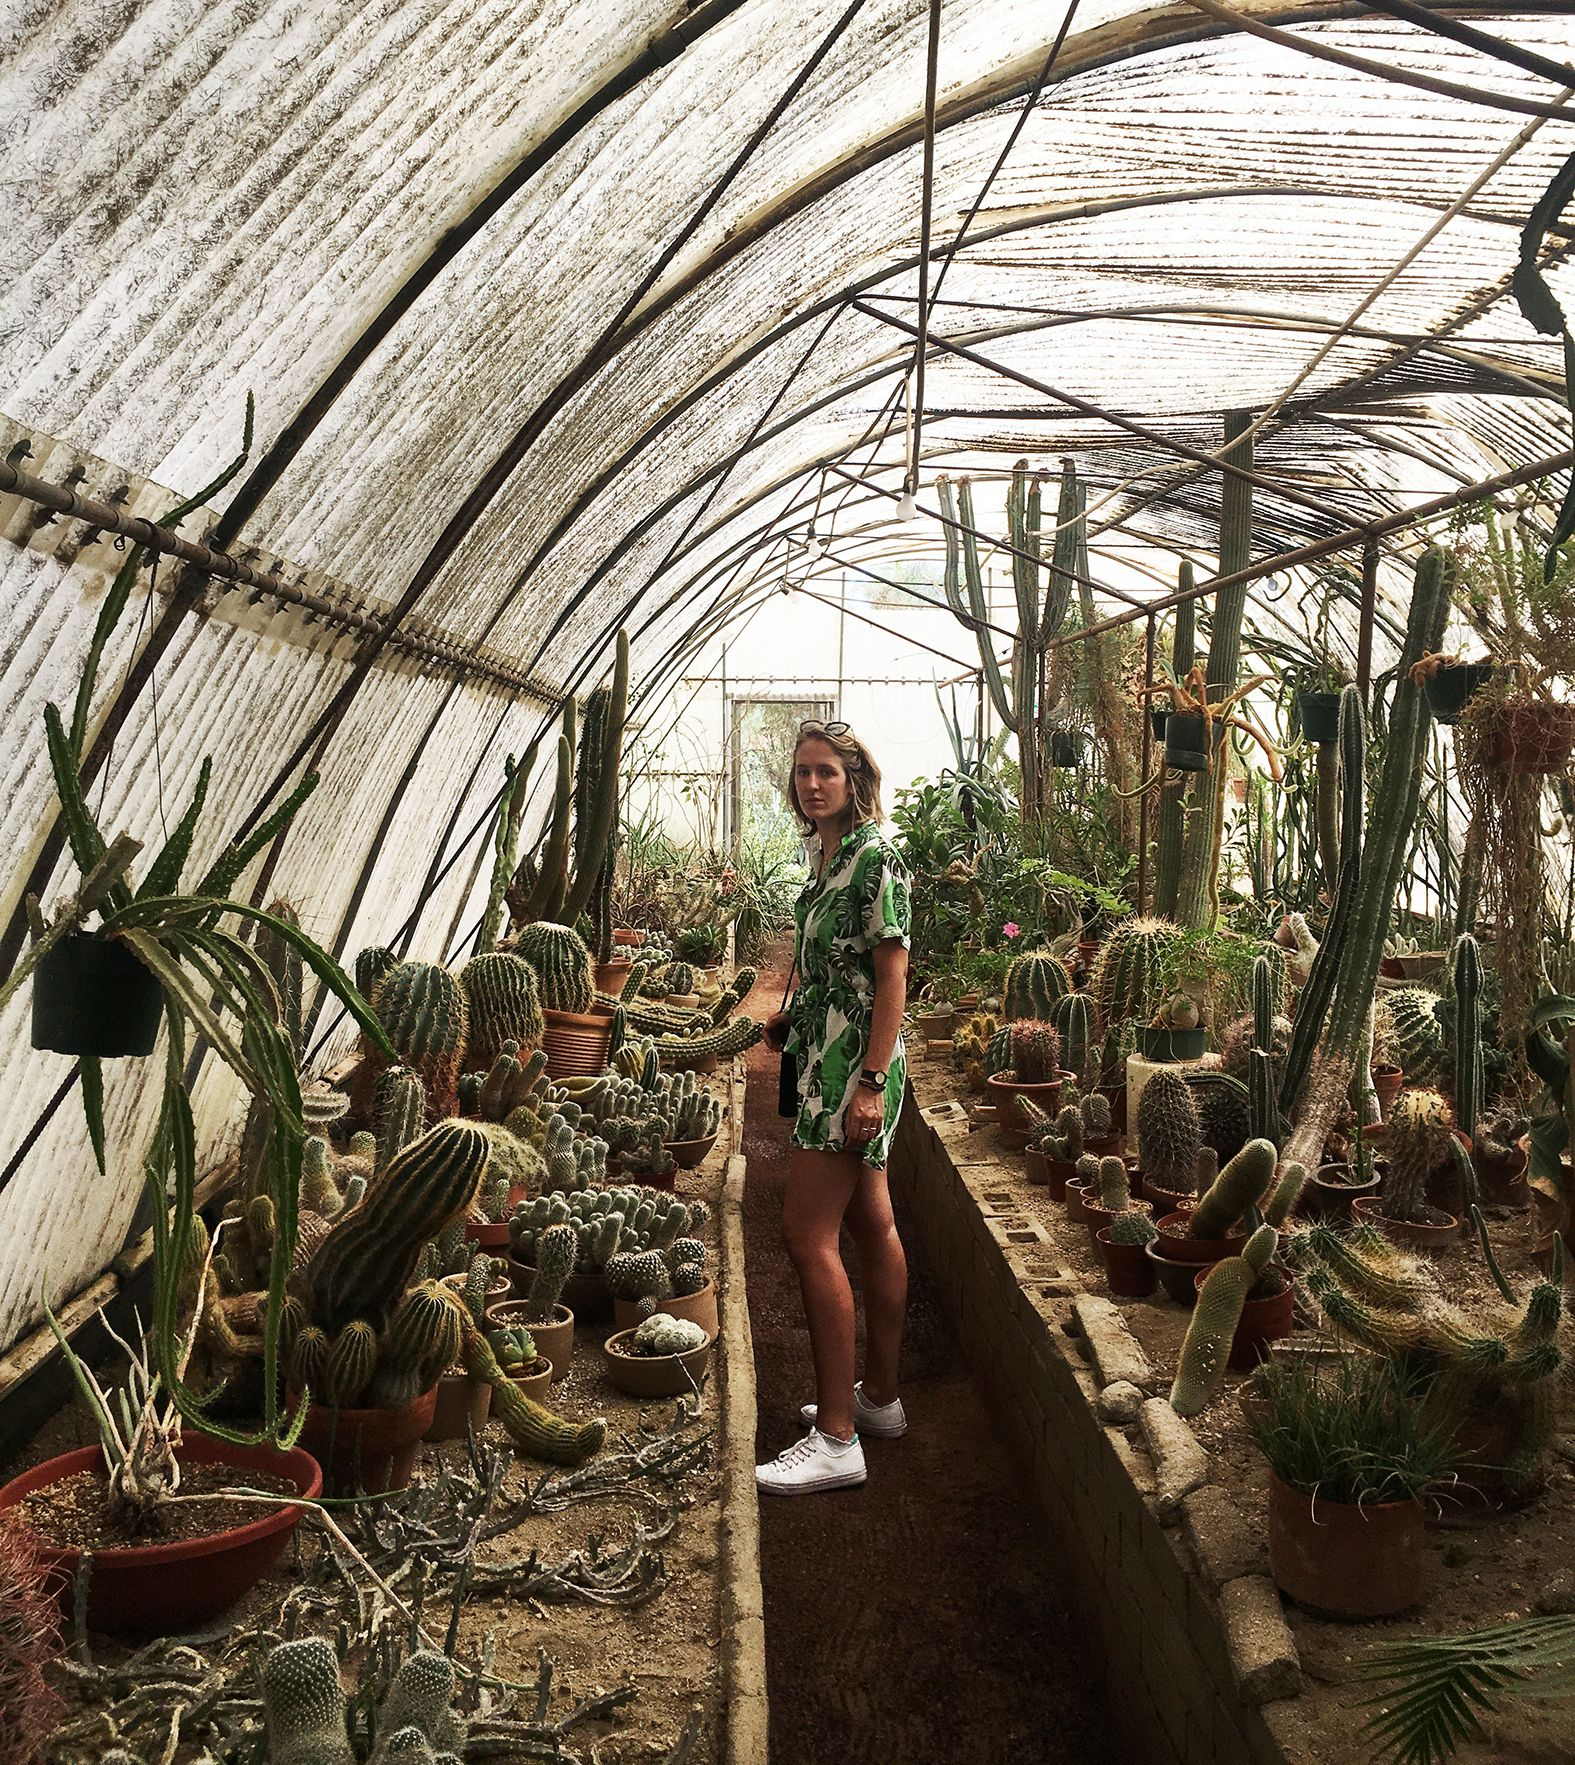 Hilly Founder Hilary At The World S First Cactarium At Moorten